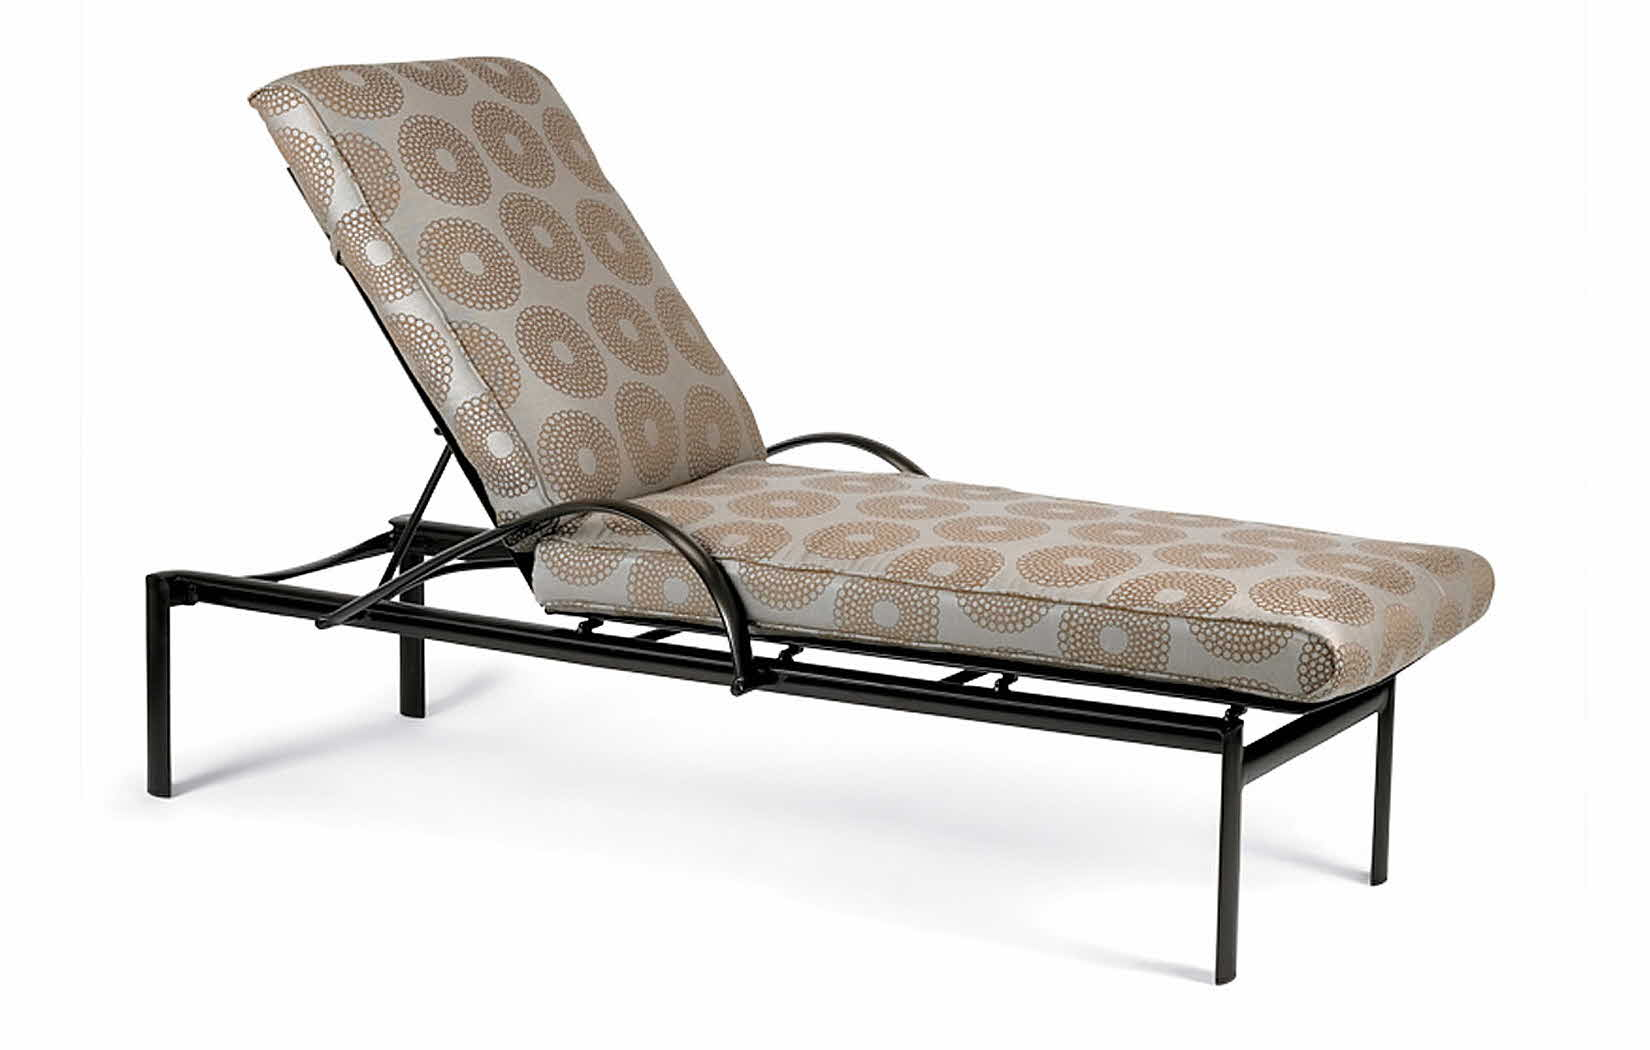 M36009  Southern Cay Cushion Collection Chaise Lounge